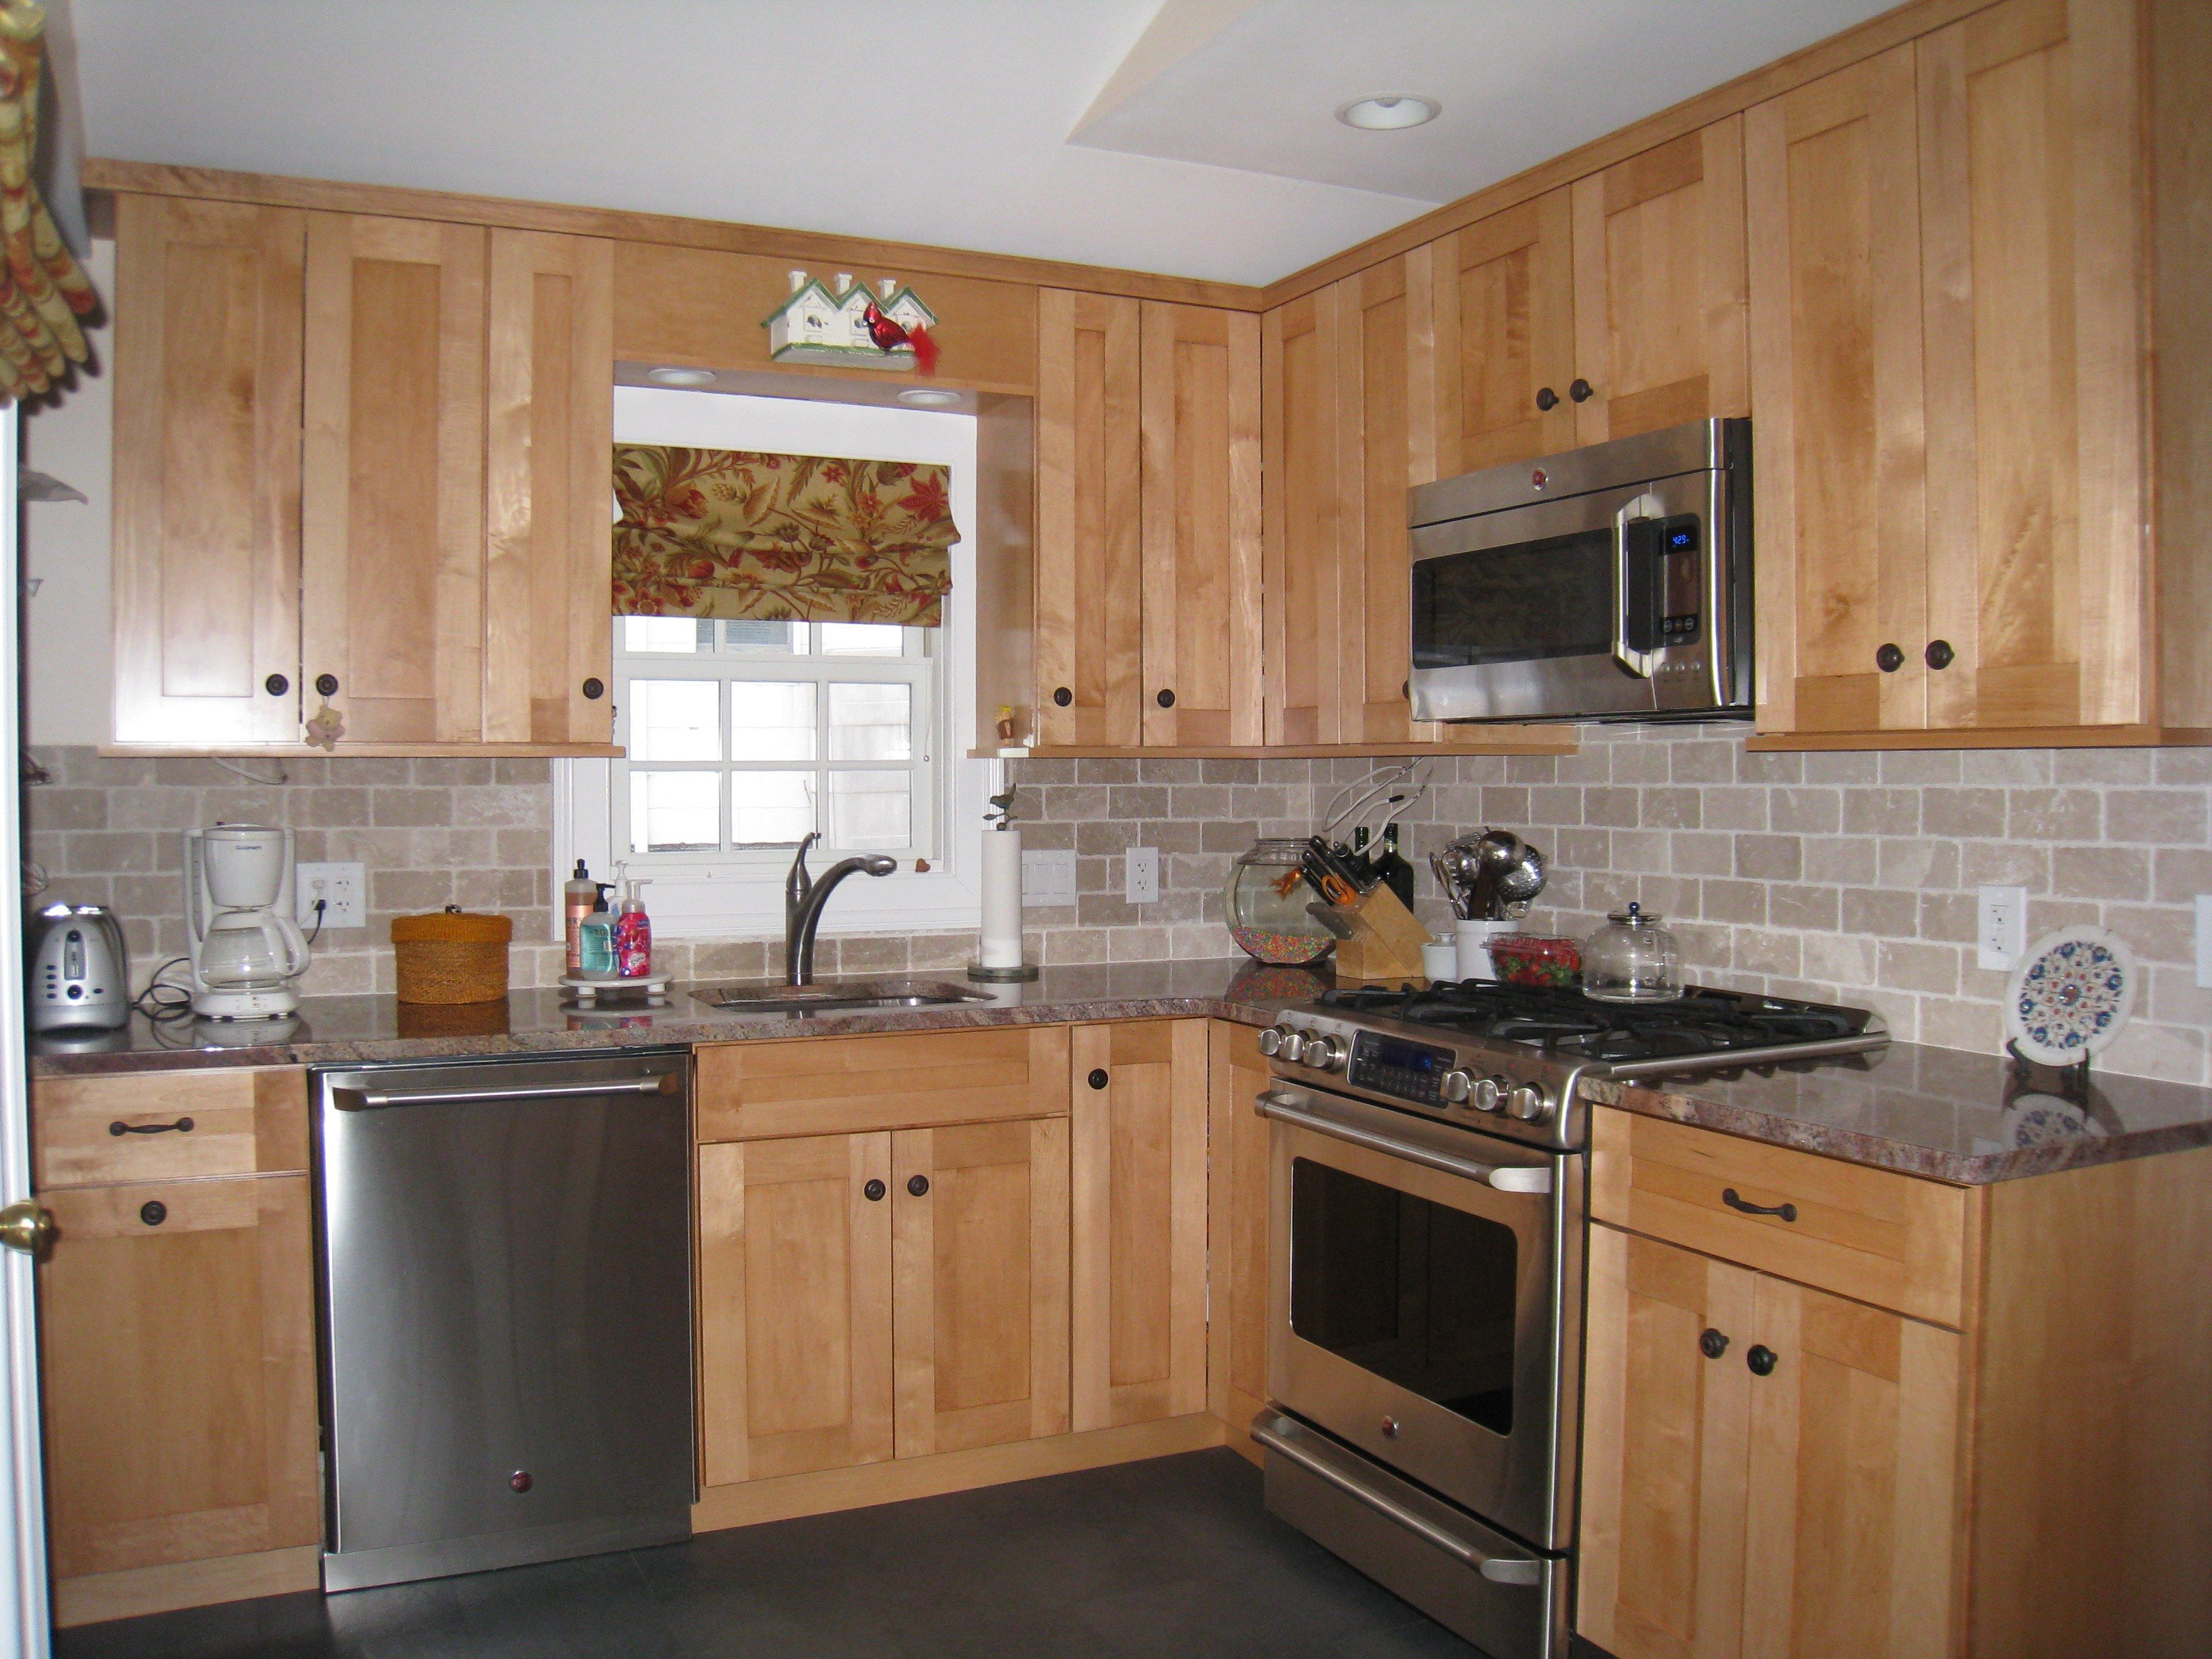 Pictures Of Kitchen Backsplashes Shaker Style Maple Cabinets Stone Subway Tile Backsplash